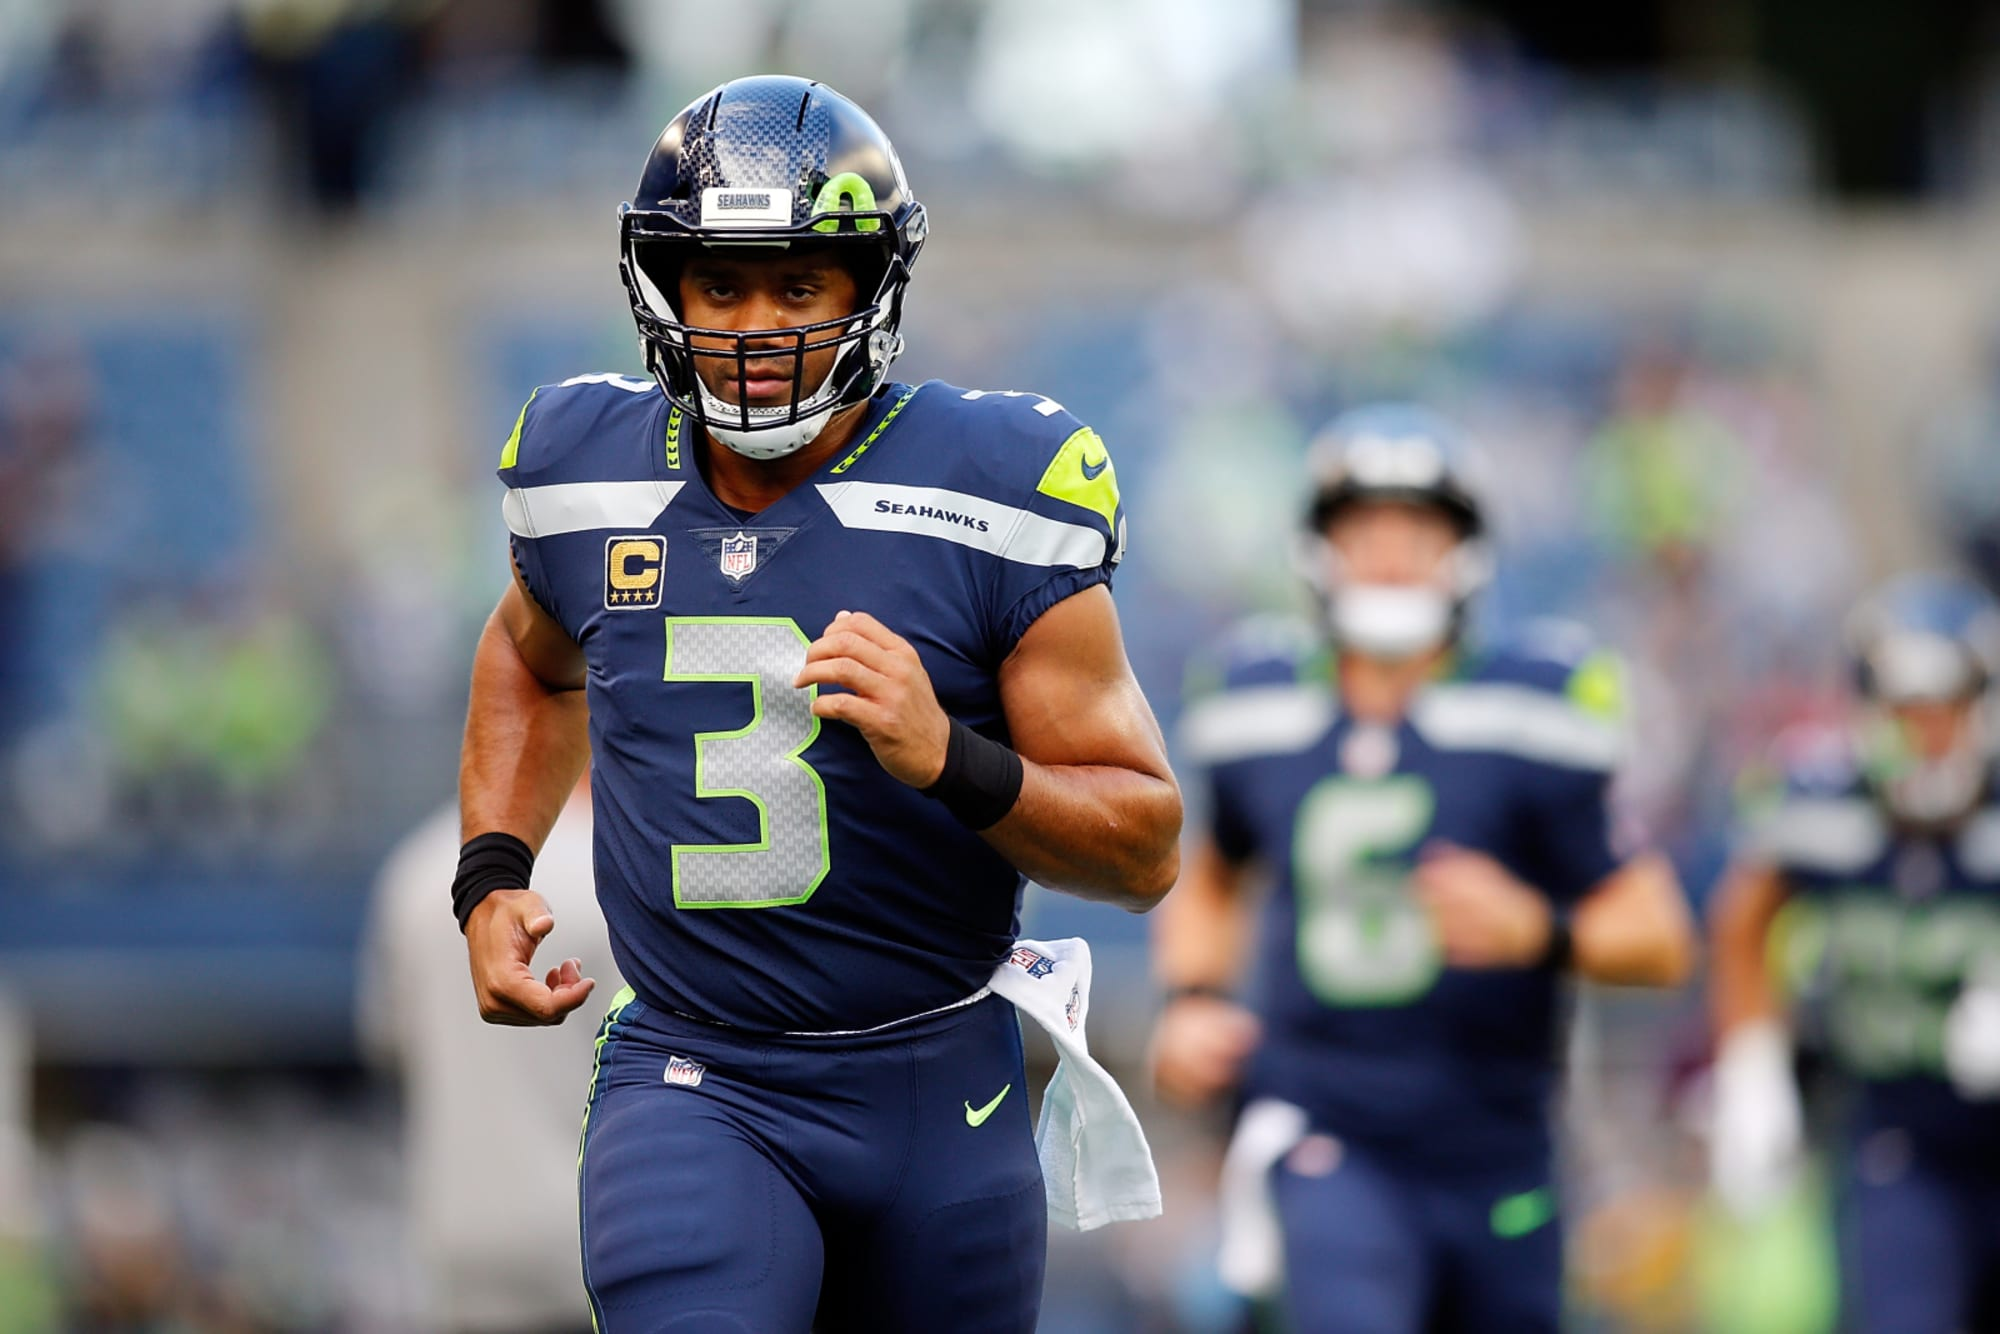 Colts: What would a Russell Wilson trade package look like?